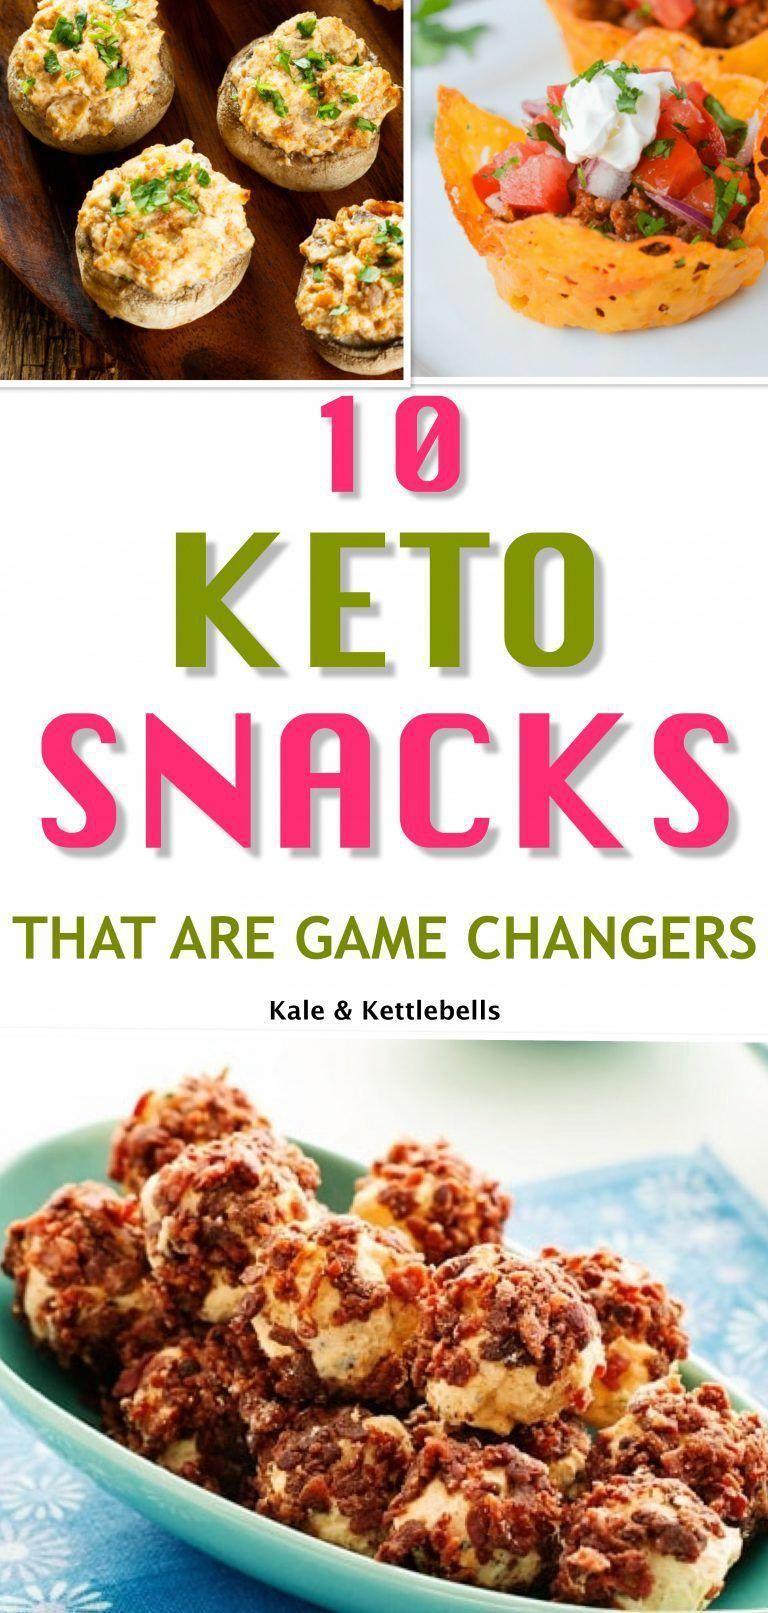 am really glad that these snacks are low carb and ketogenic since they look so good. Some great healthy recipes for the whole family!